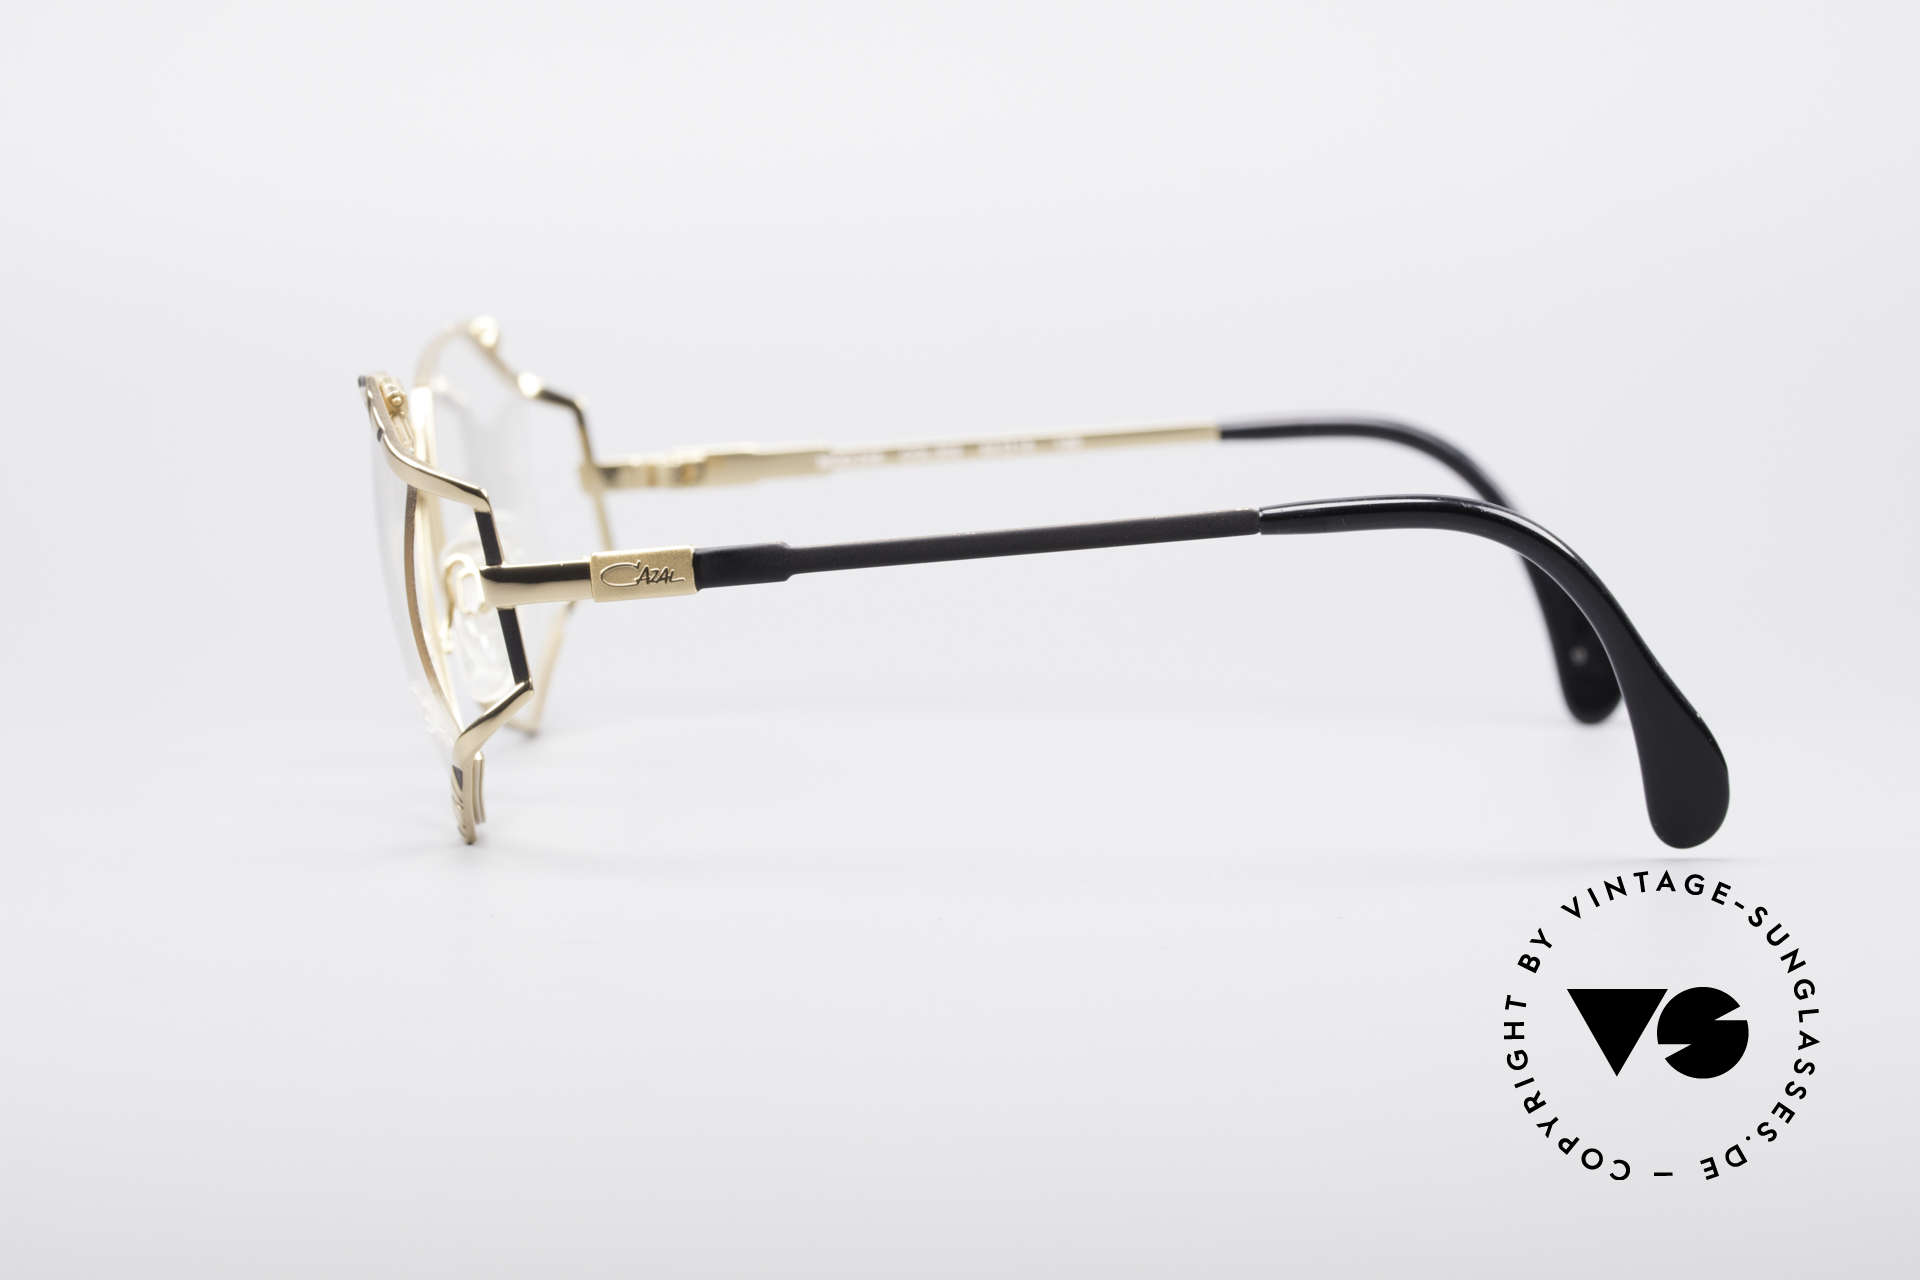 Cazal 245 90's Designer Ladies Specs, marvelous play of colors (black/gold) & pattern, Made for Women